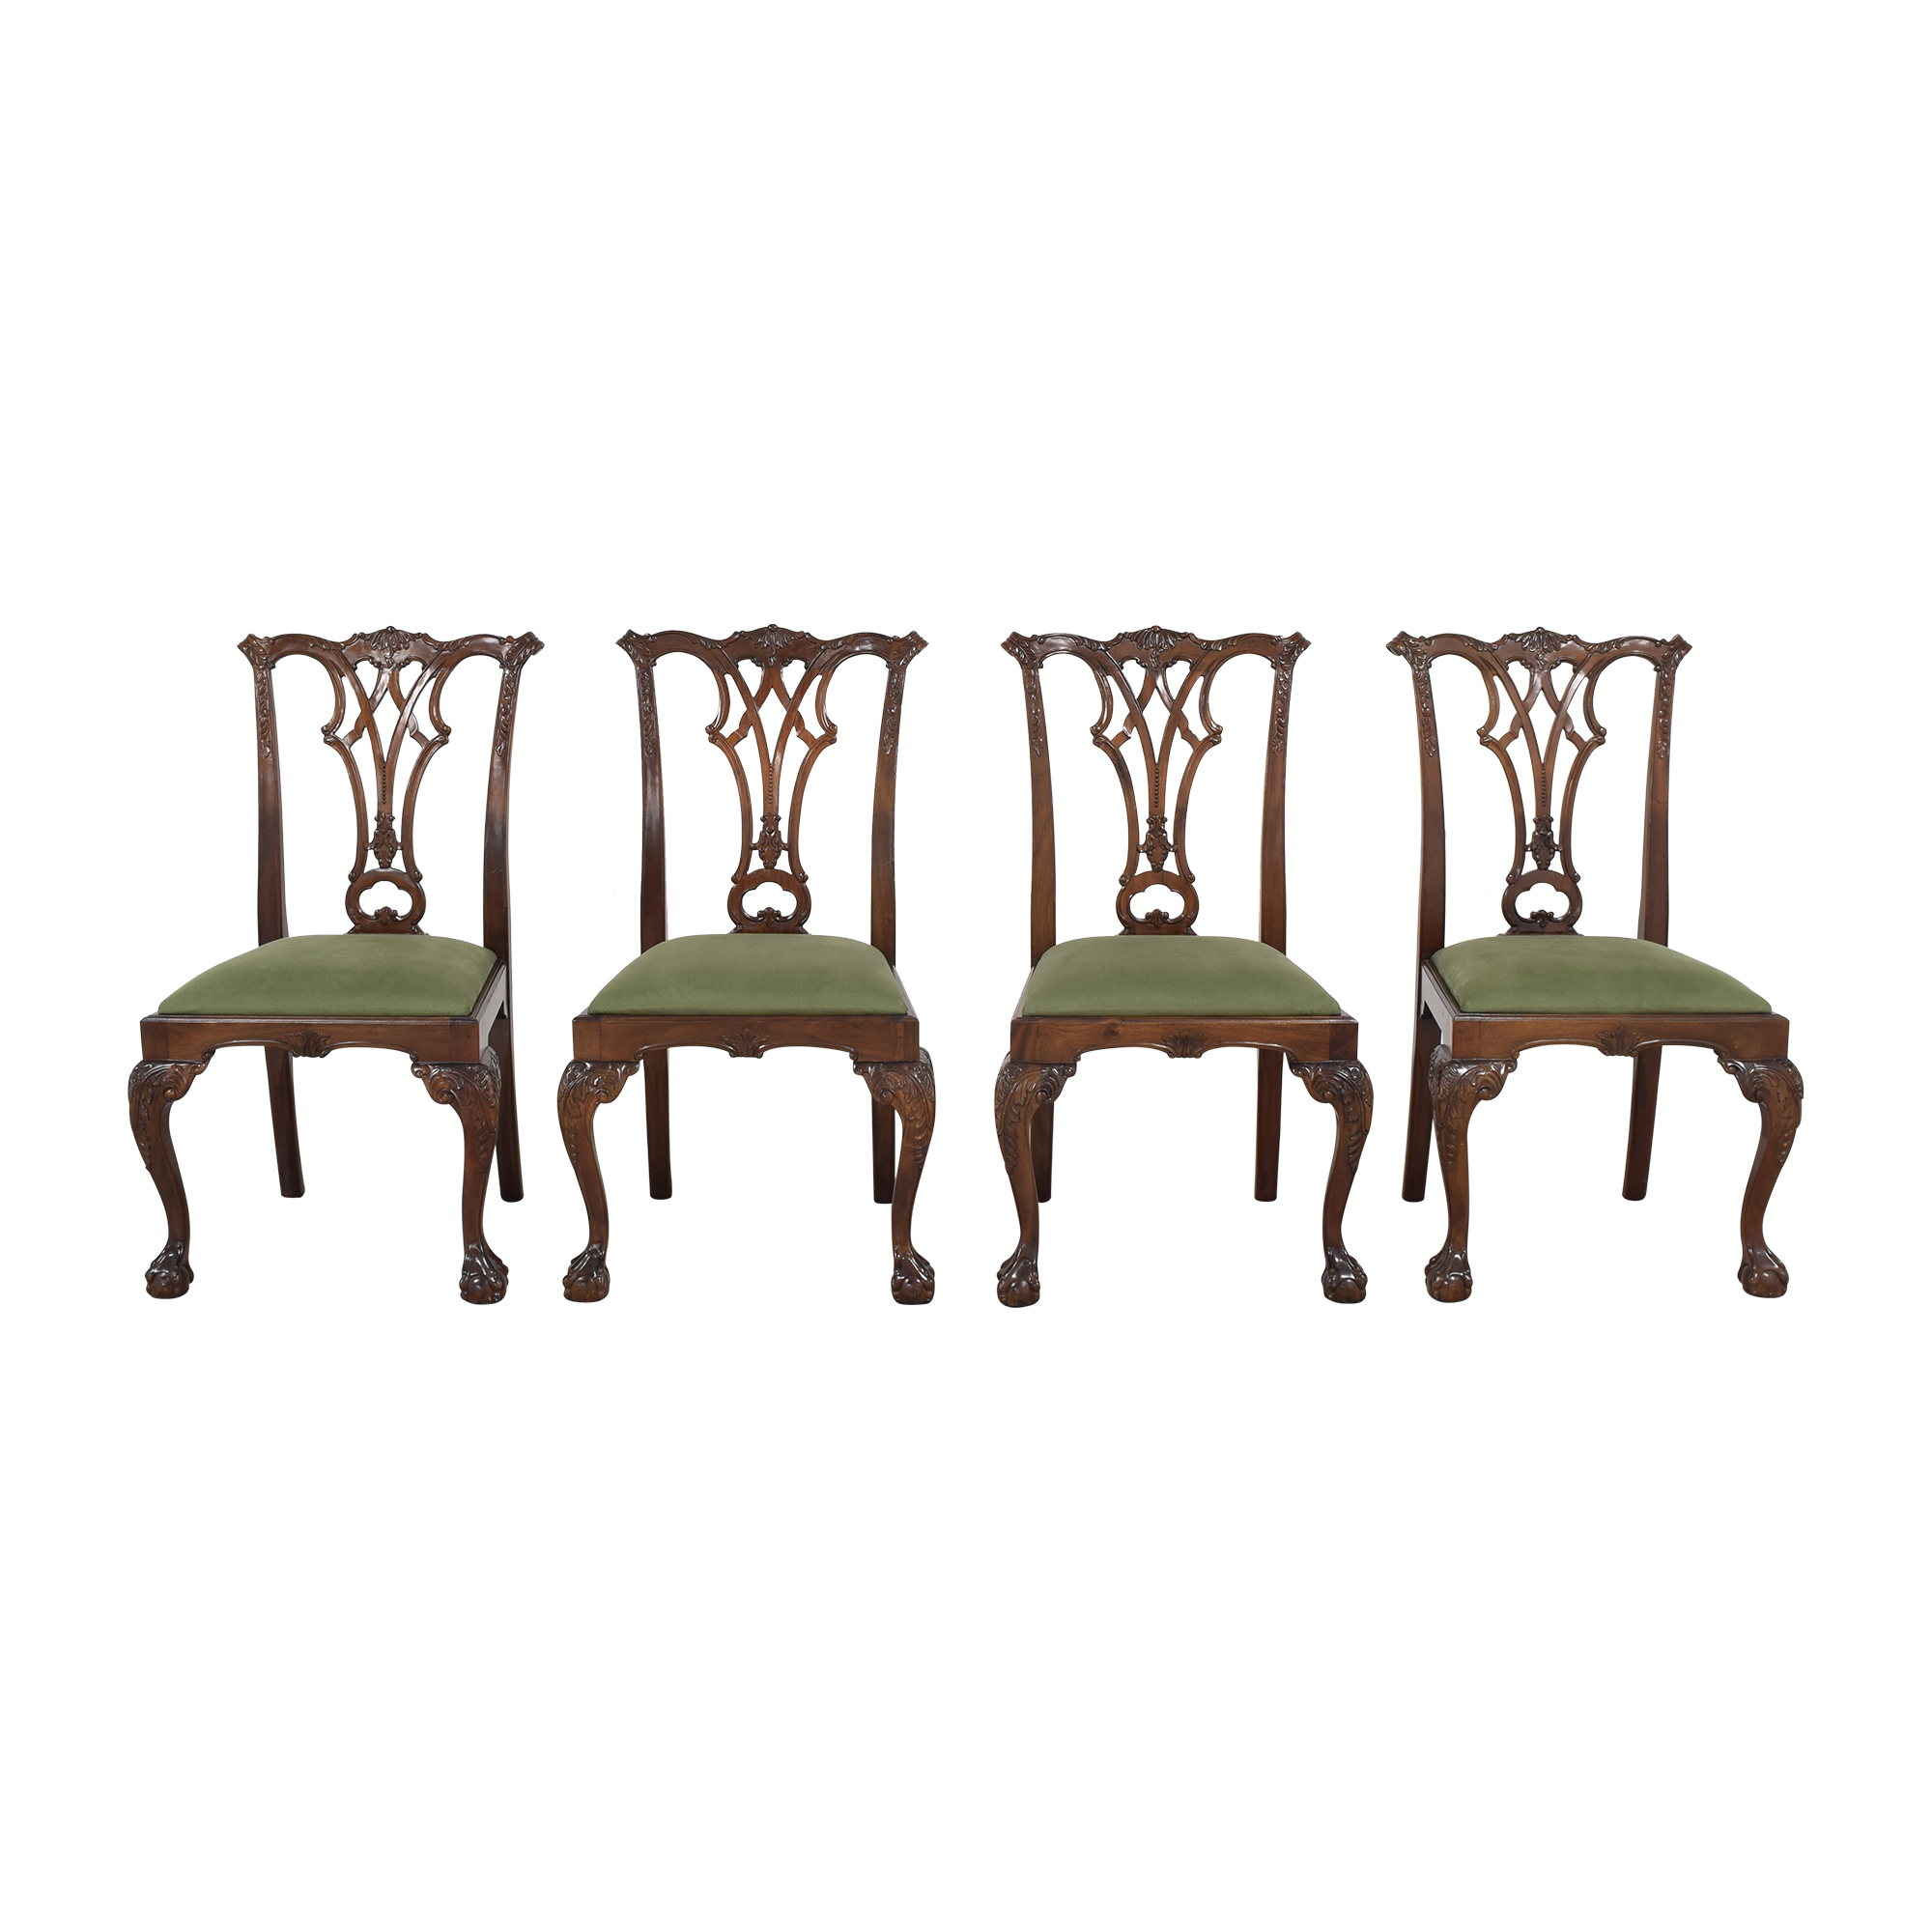 Greenbaum Interiors Greenbaum Interiors Vintage Upholstered Dining Chairs for sale